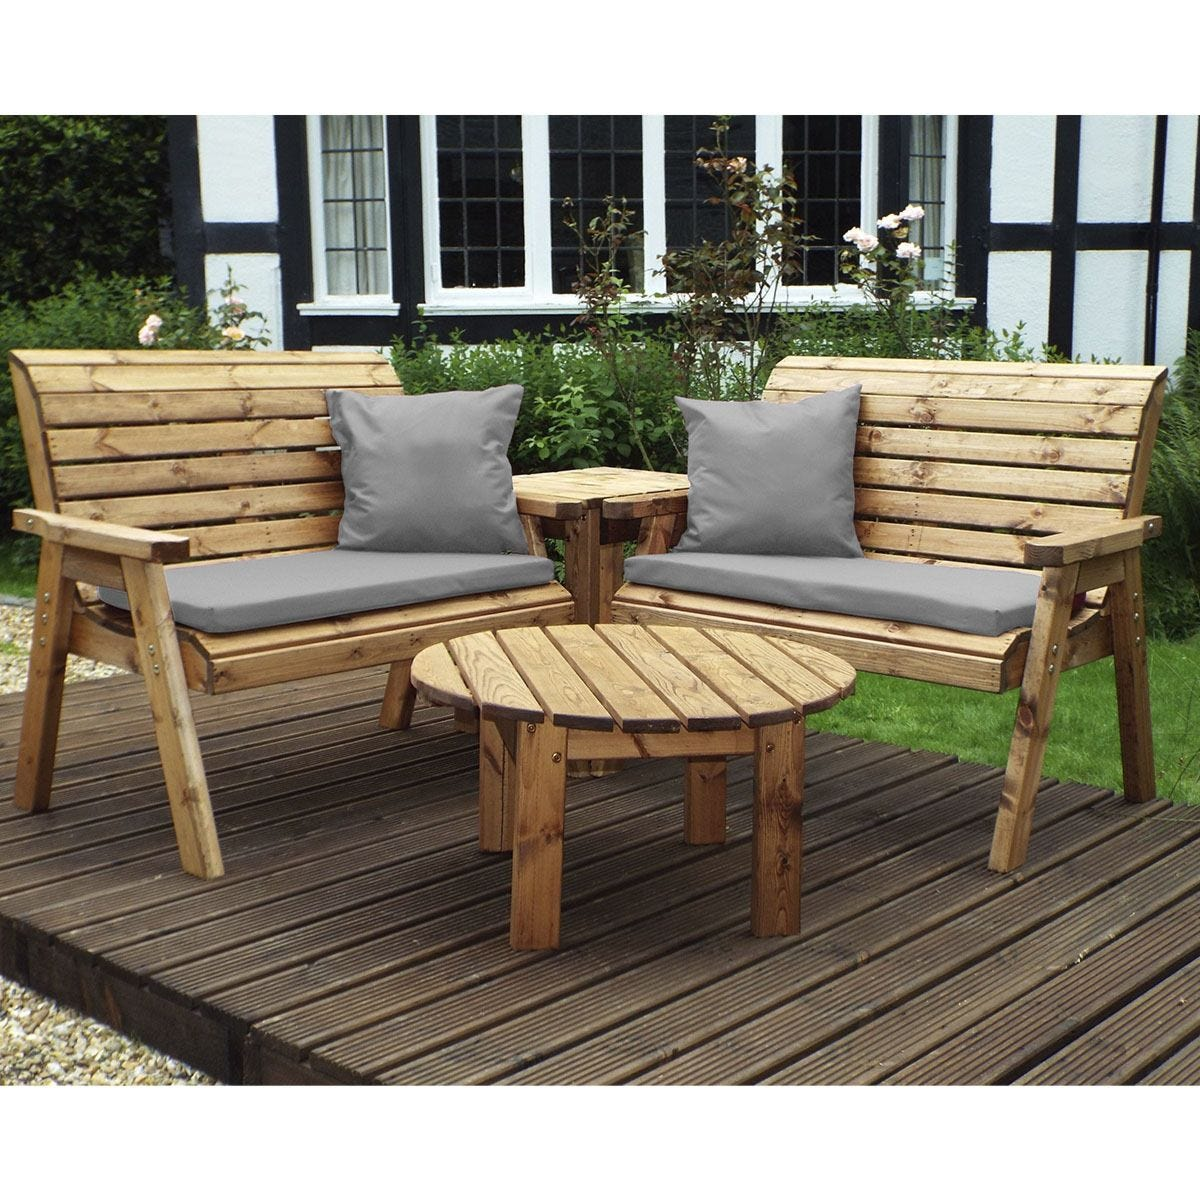 Charles Taylor Four Seater Corner Unit with Grey Cushions